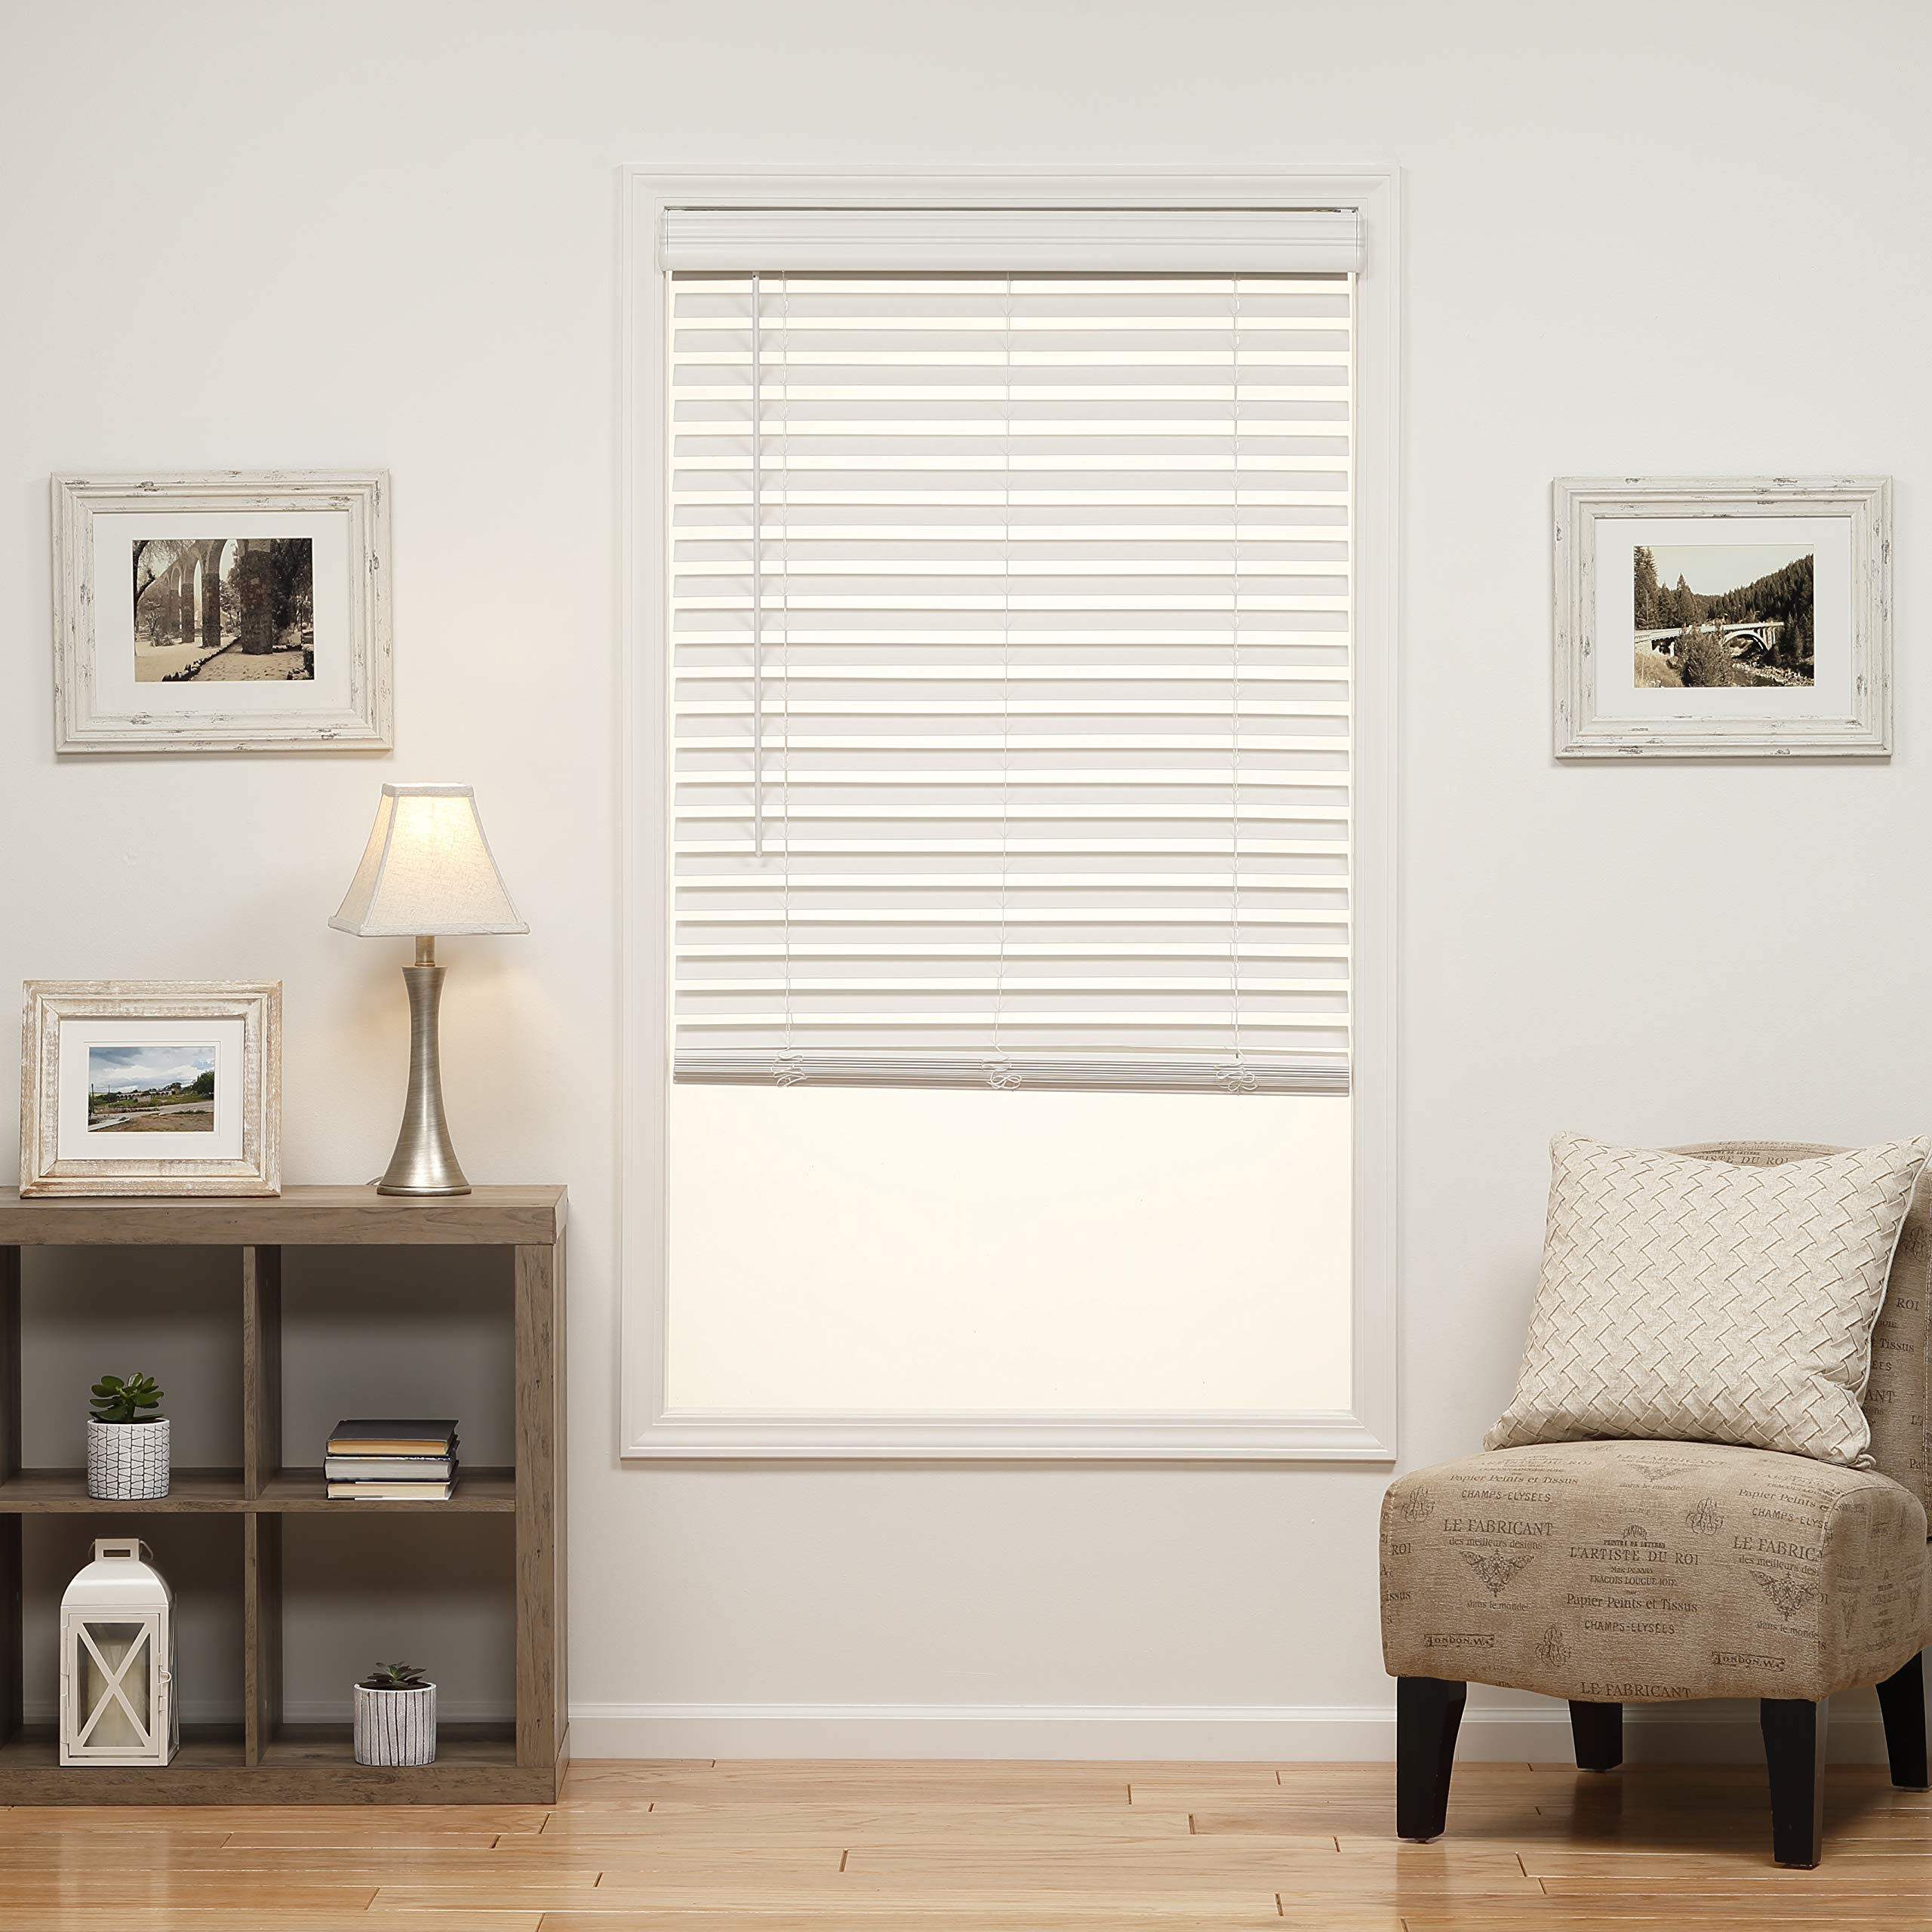 DEZ Furnishings QJWT504480 2 in. Cordless Faux Wood Blind, 50.5W x 48L Inches, White